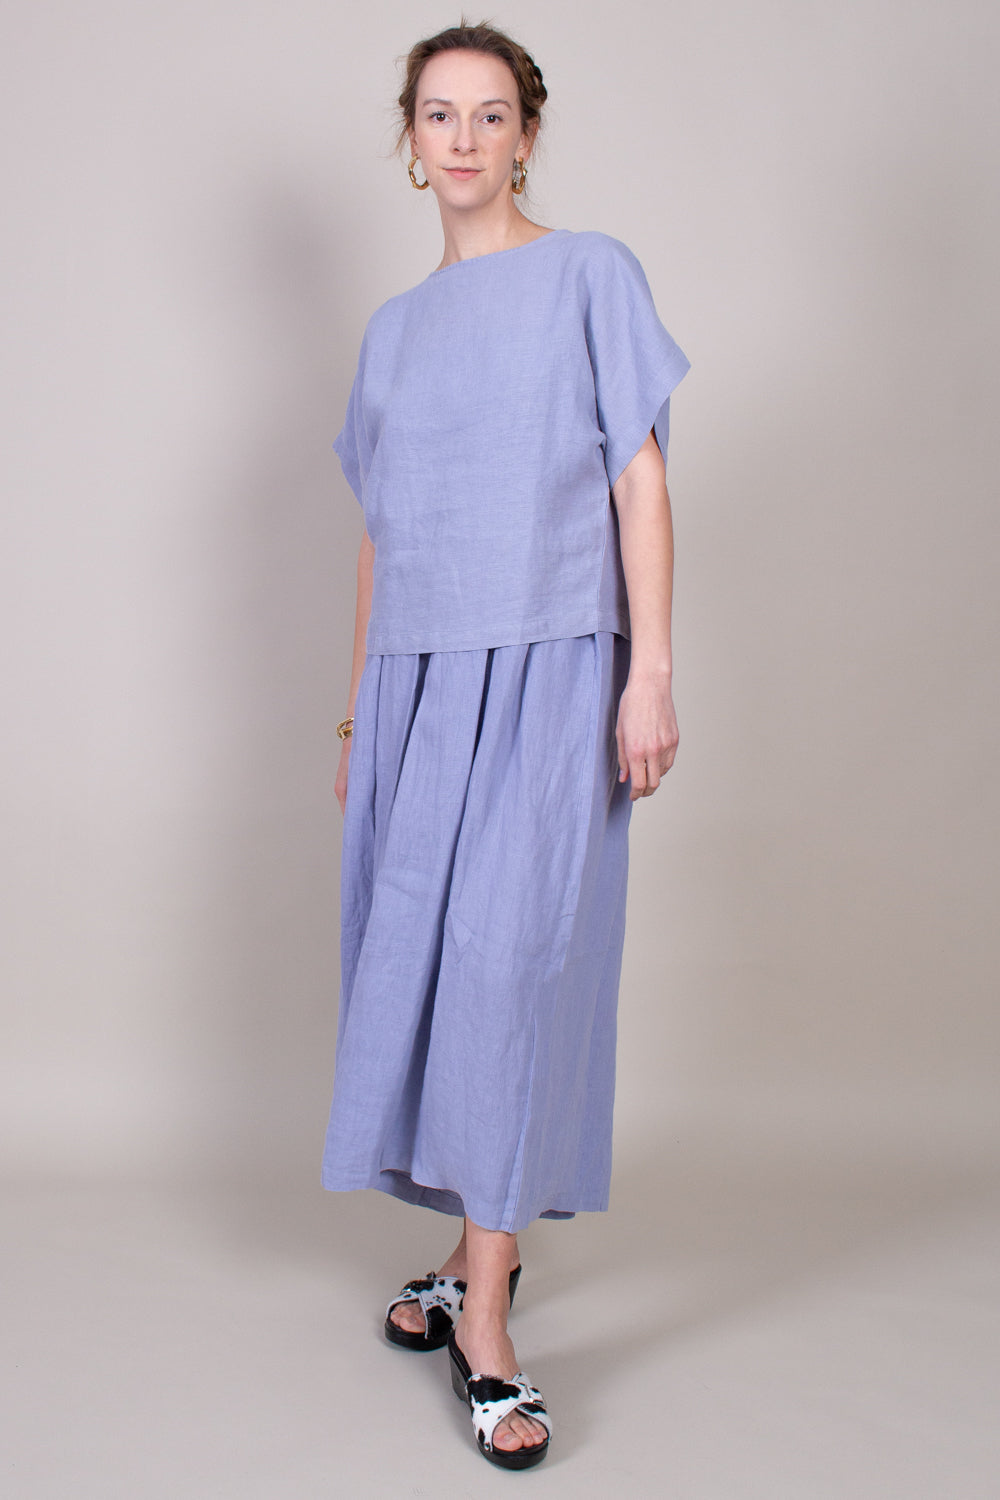 Black Crane Box Top in Lavender - Vert & Vogue